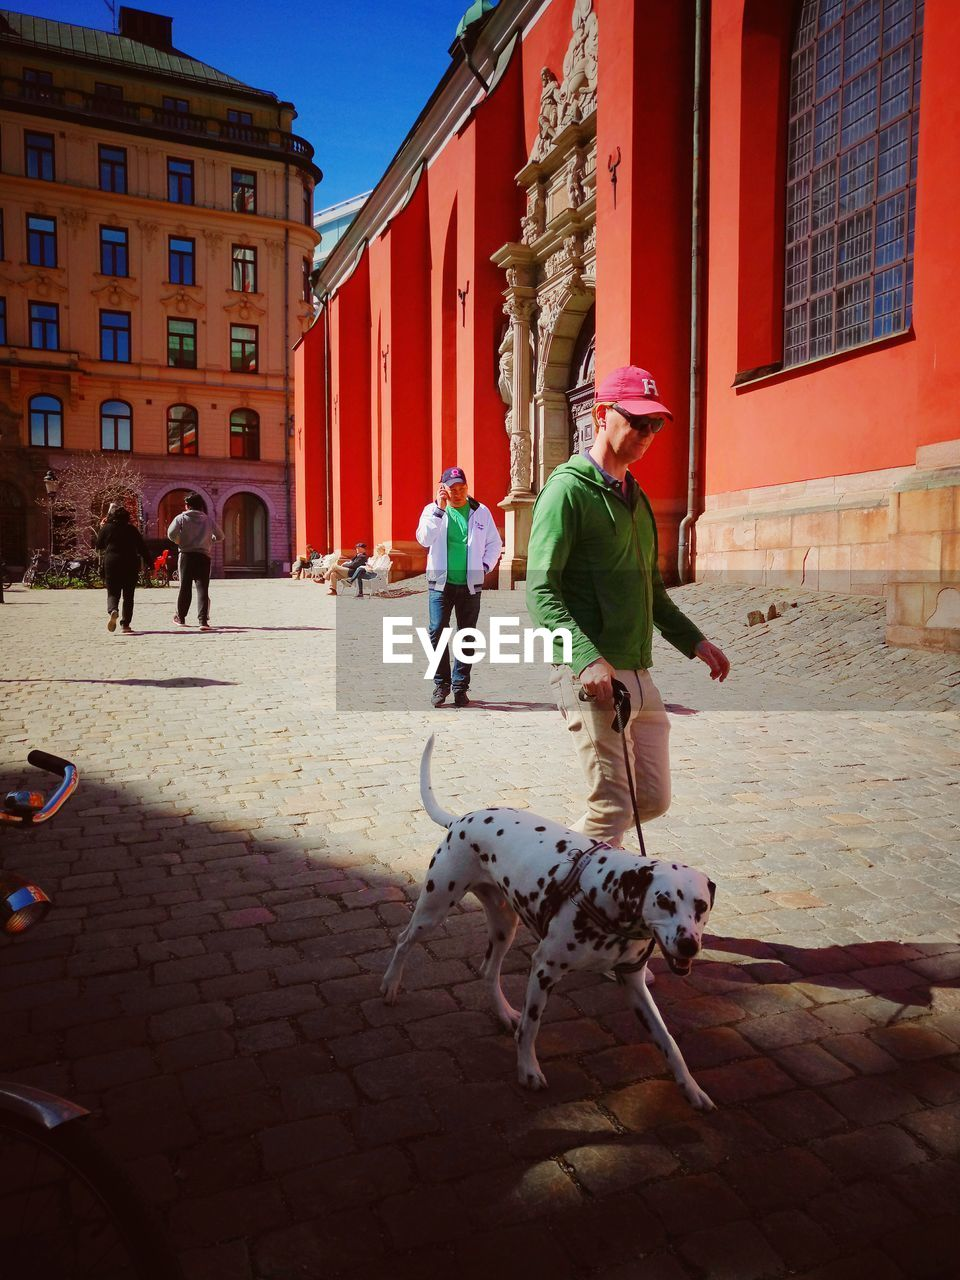 building exterior, real people, architecture, built structure, outdoors, dog, sunlight, day, men, lifestyles, leisure activity, full length, togetherness, pets, mammal, city, people